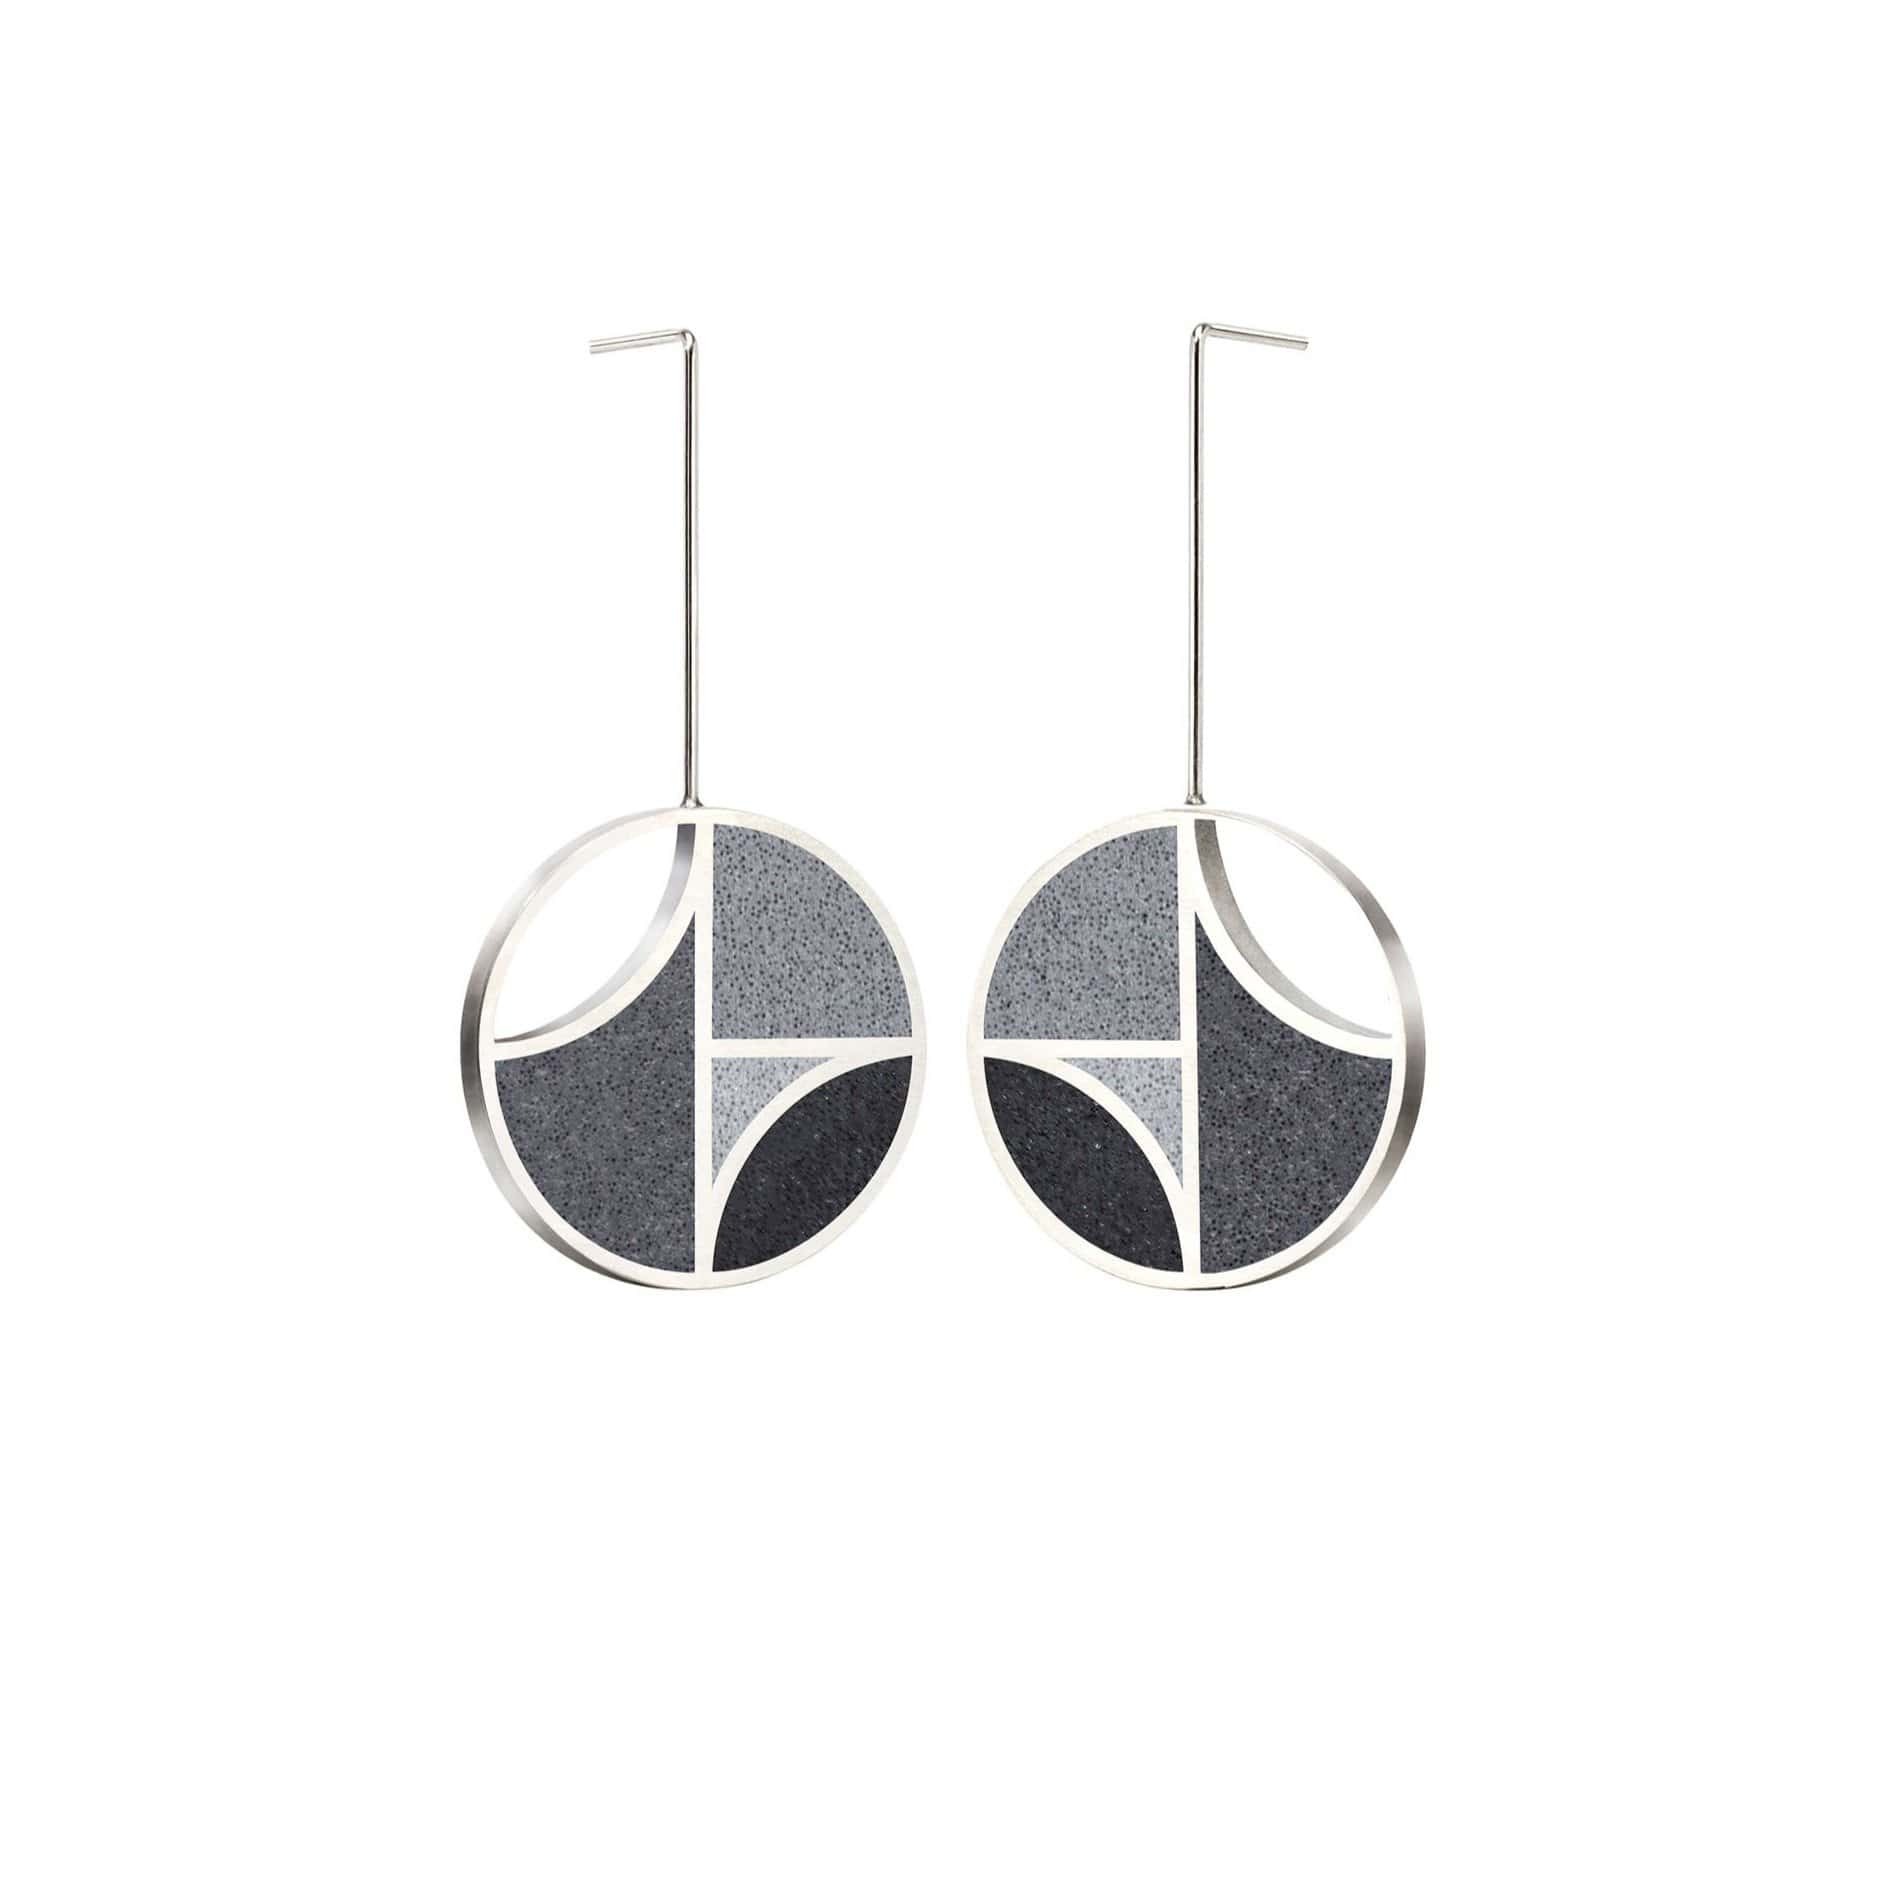 Konzuk Earrings Mix K- Black Saguaro Concrete Earring Drops 3